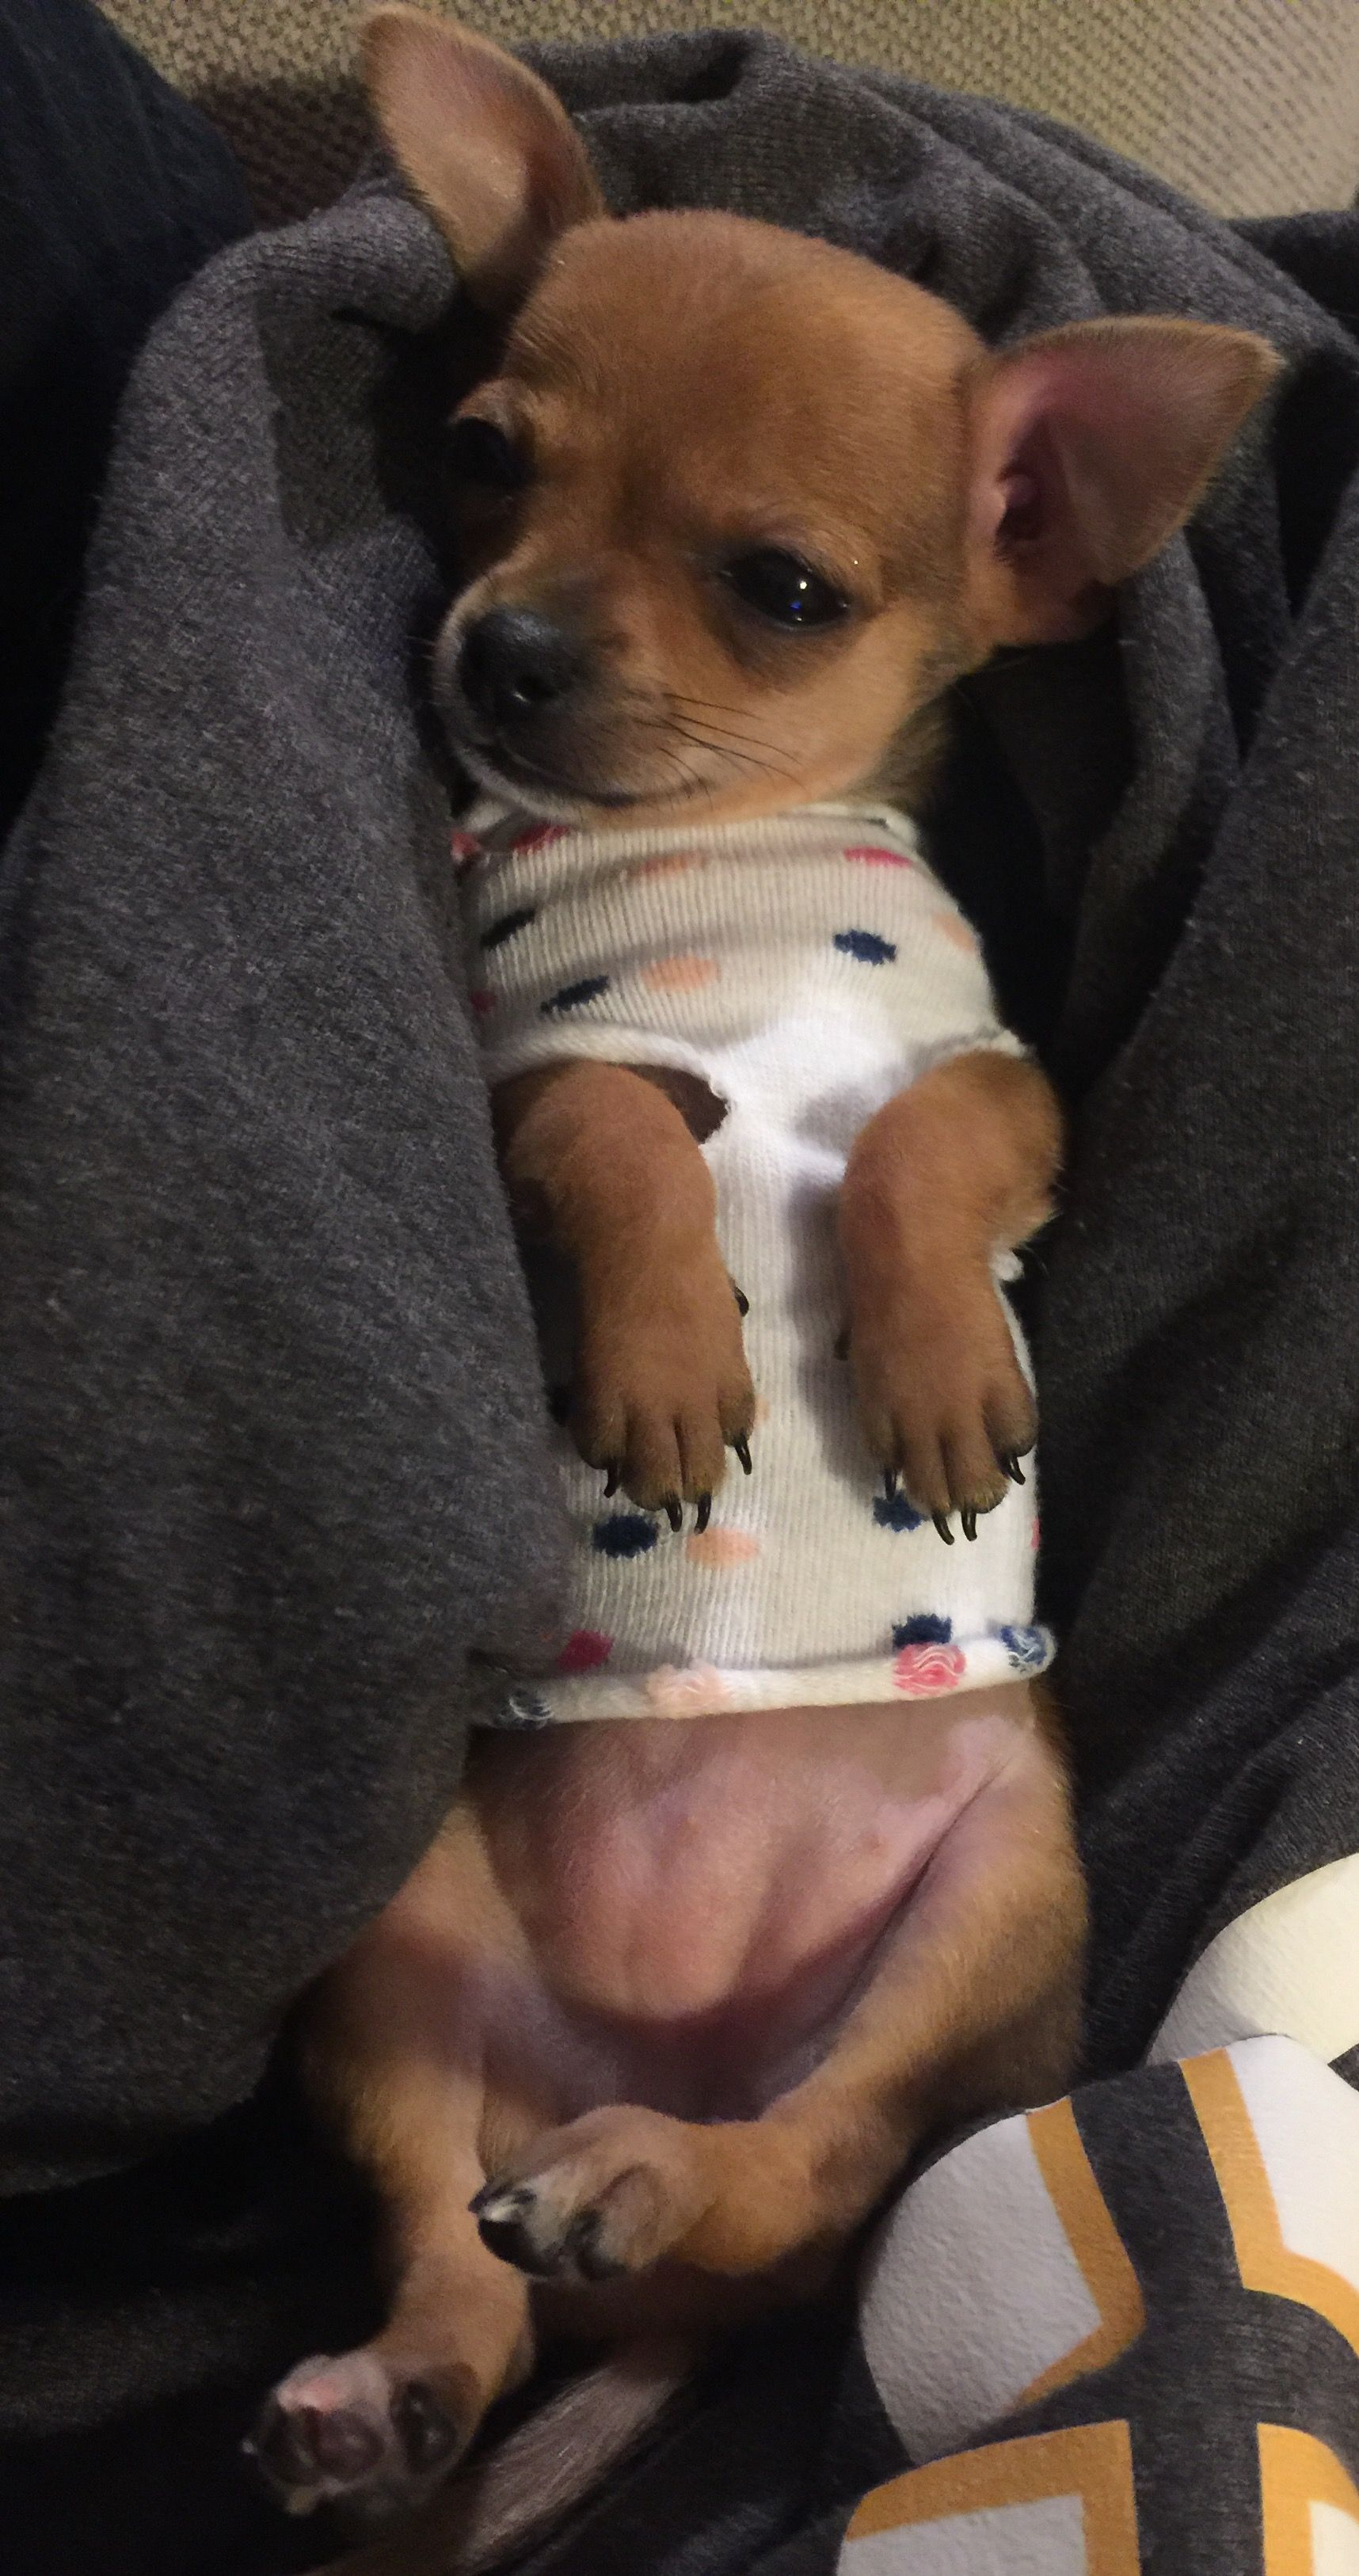 Chihuahua puppy in pajamas Homemade clothes using a baby sock